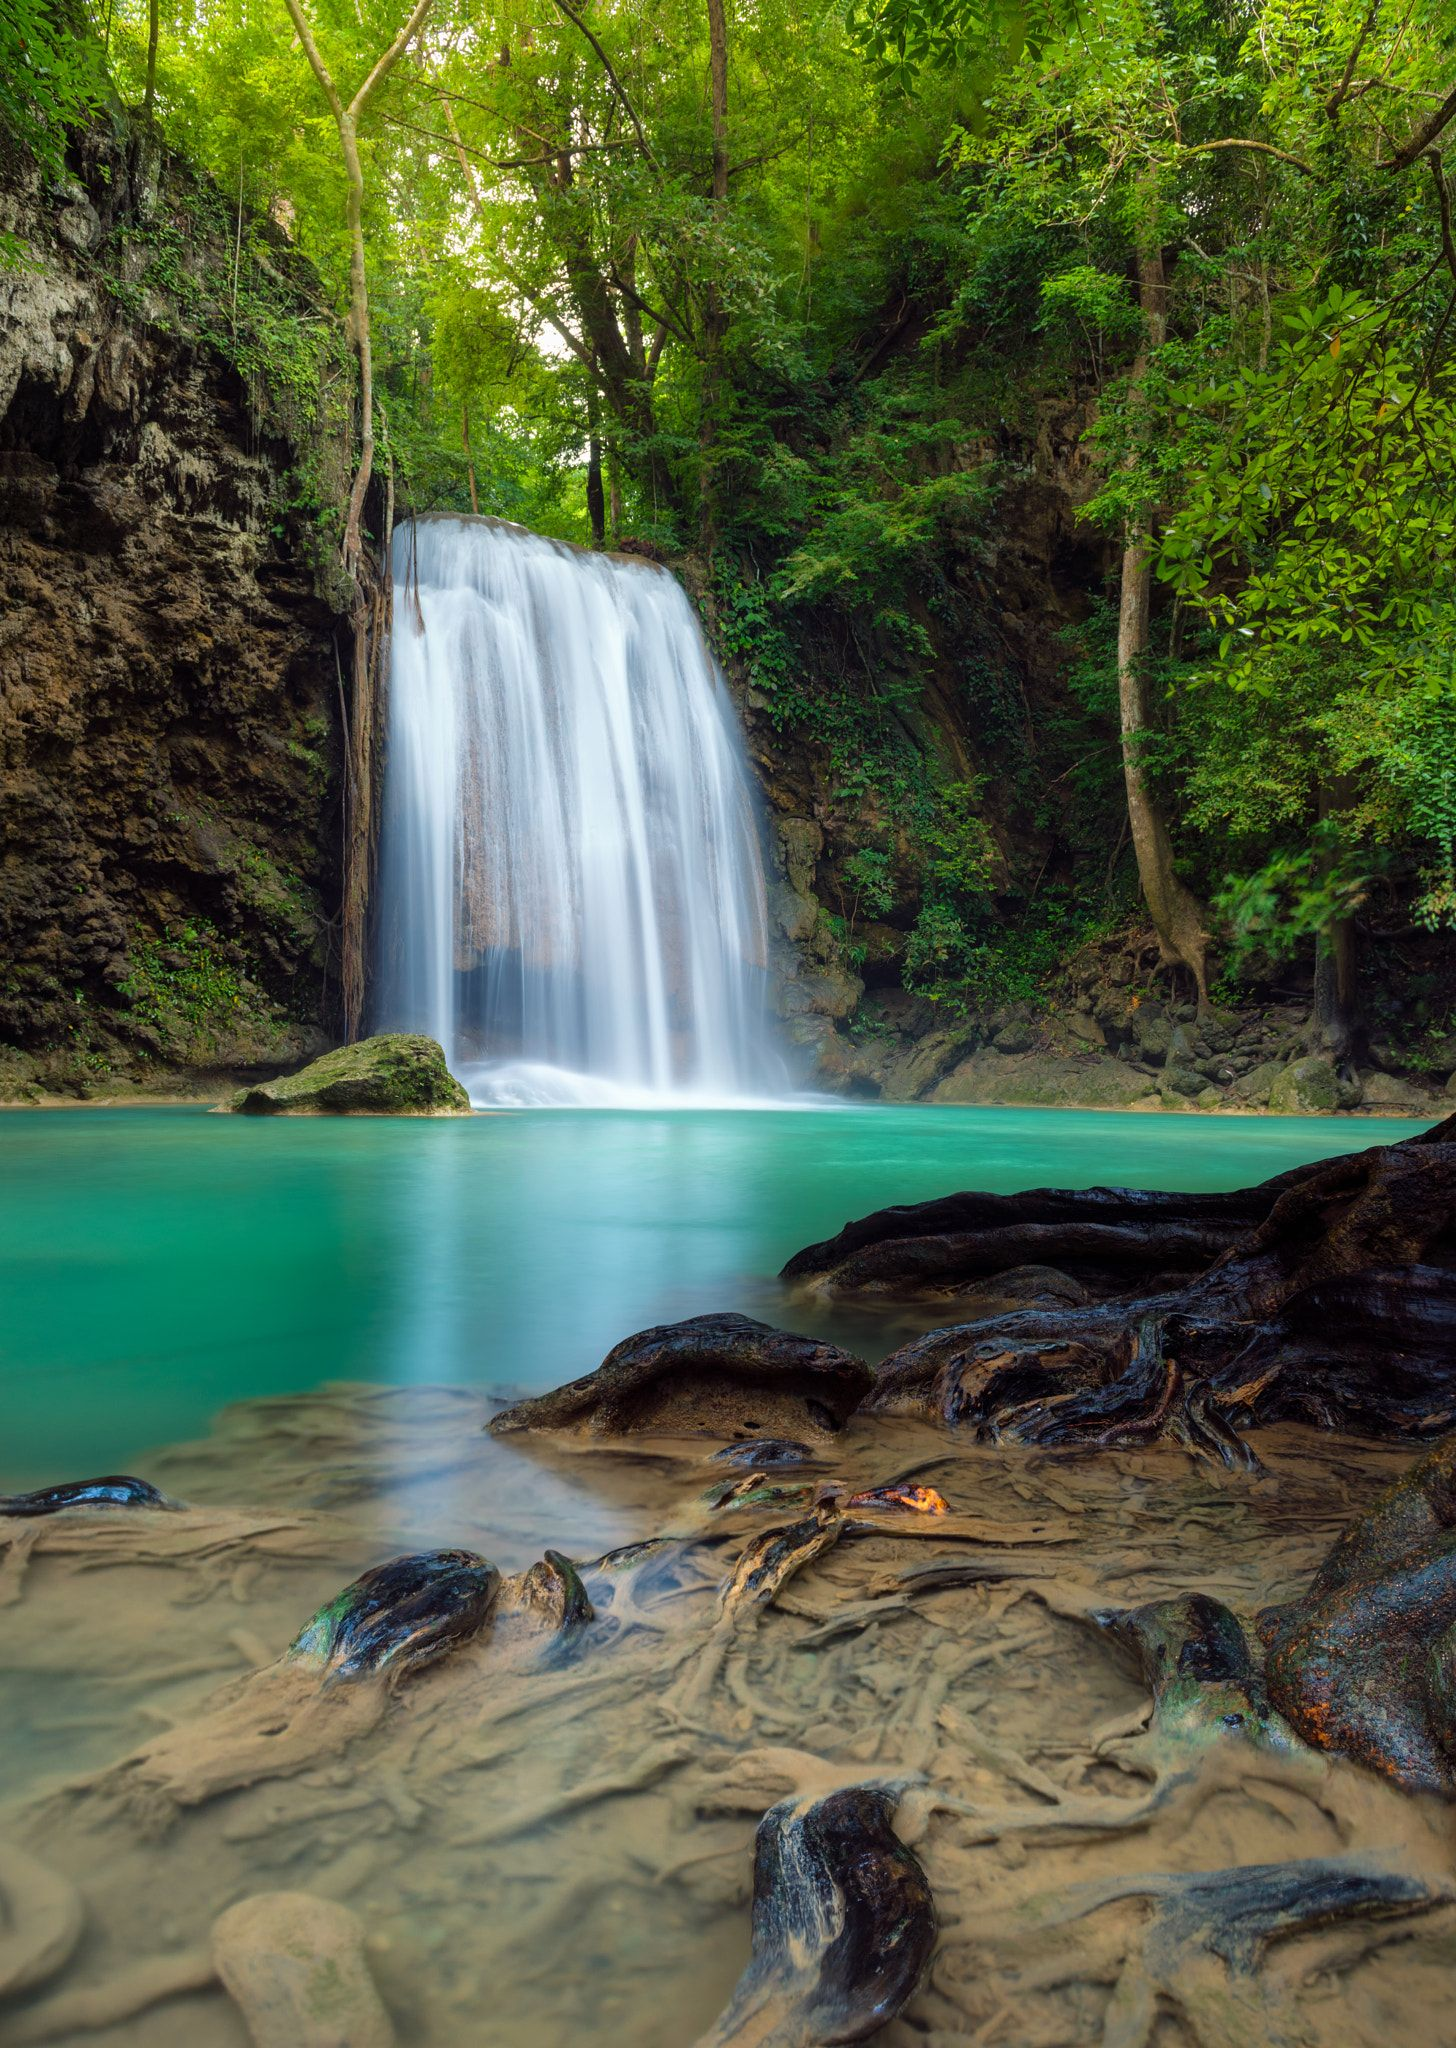 Root And Falls Beautiful Scene Of Waterfalls At Erawan National Park Thailand Erawan National Park National Parks Waterfall